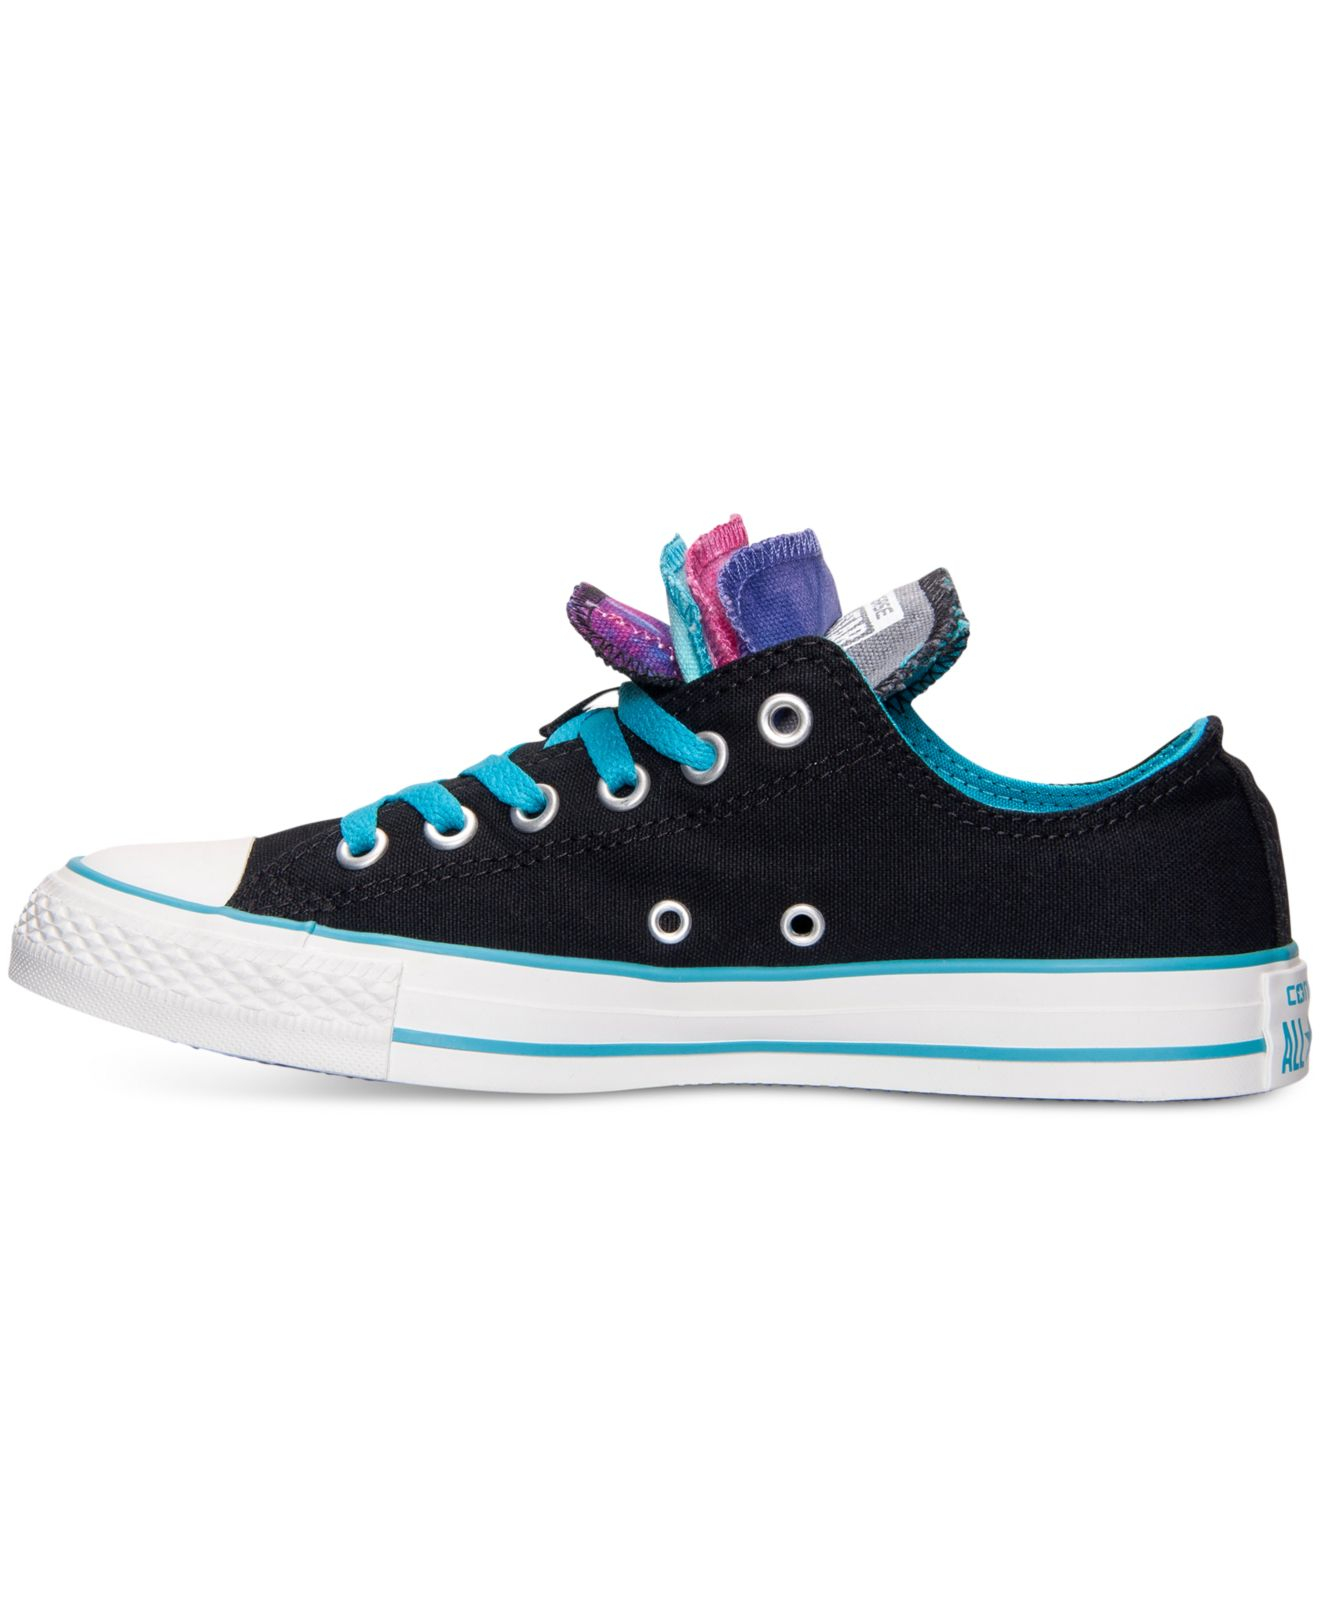 b2218a88c305 Lyst - Converse Women S Chuck Taylor Ox Multi Tongue Casual Sneakers ...